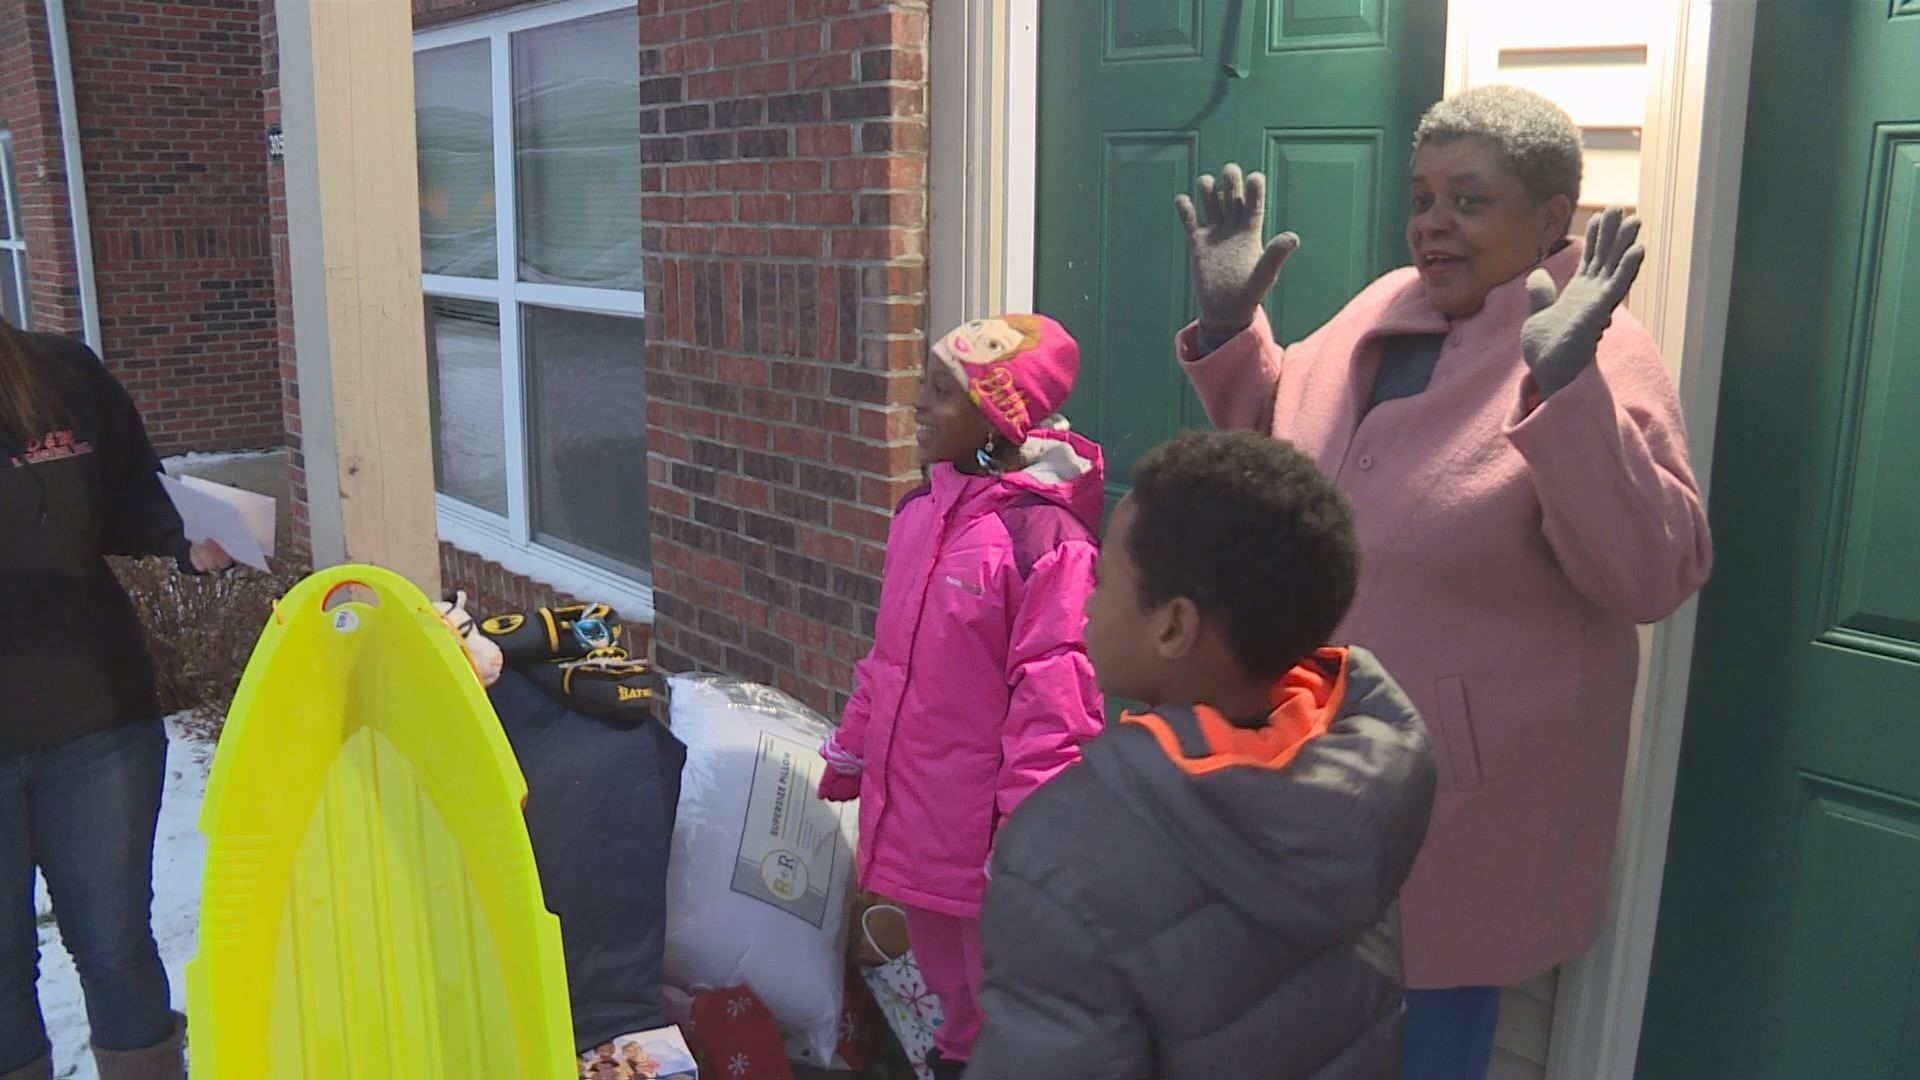 Michigan City children from Hurricane Irma receive surprise presents. // WSBT 22